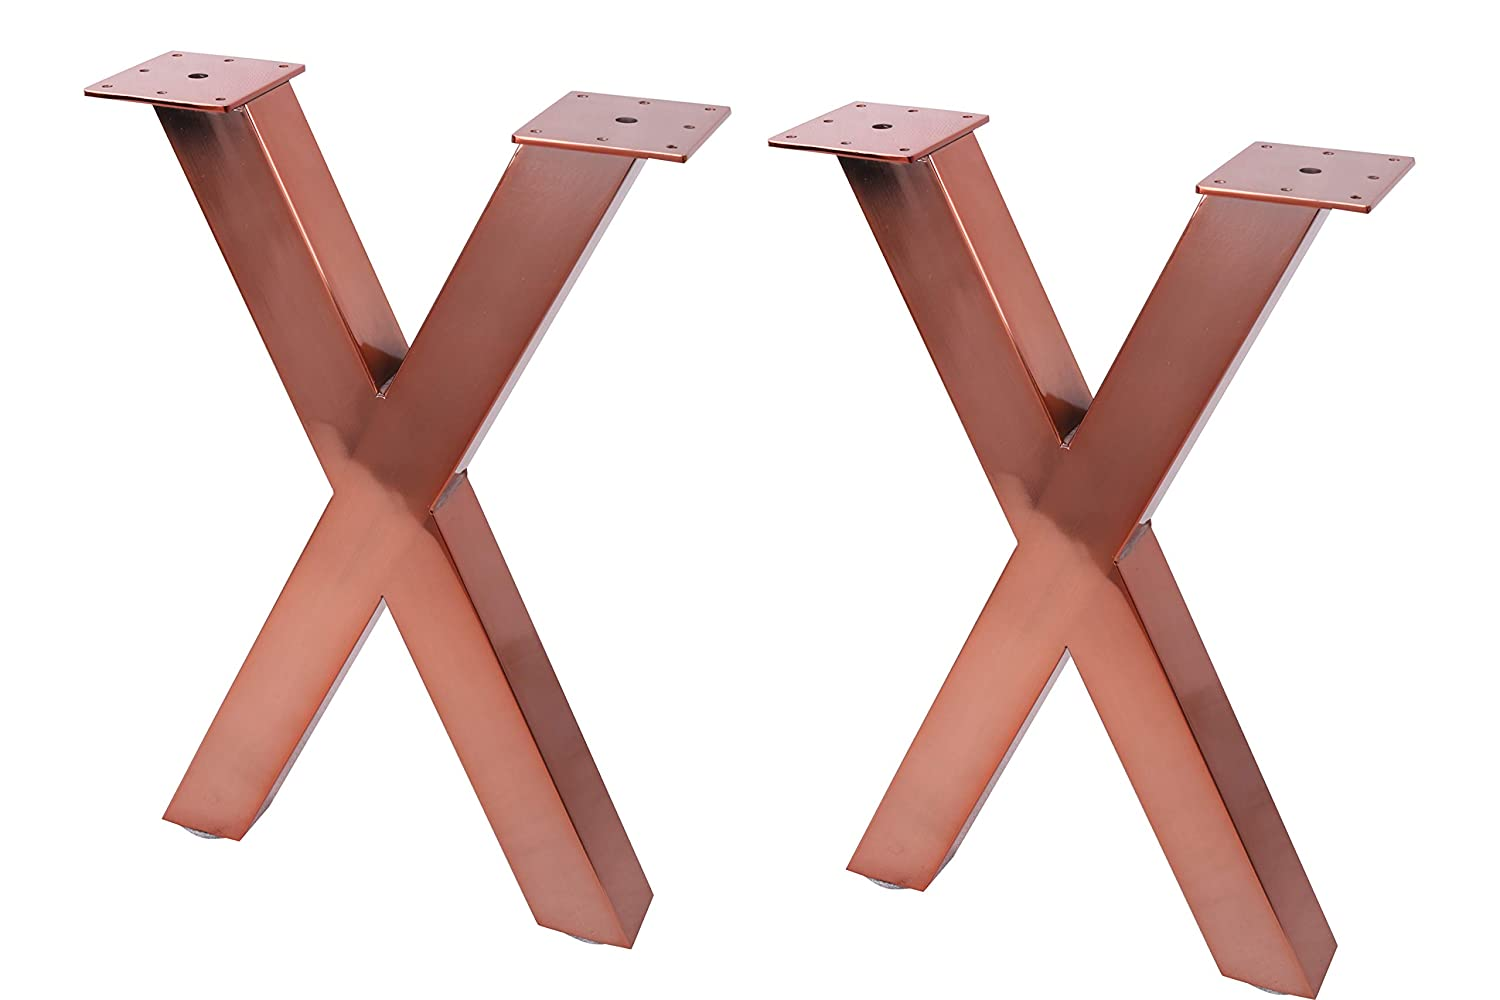 Eclv 18 dining bench legs x shaped steel table legs coffee table legs computer desk legs industrial kitchen table legs set of 2 black copper